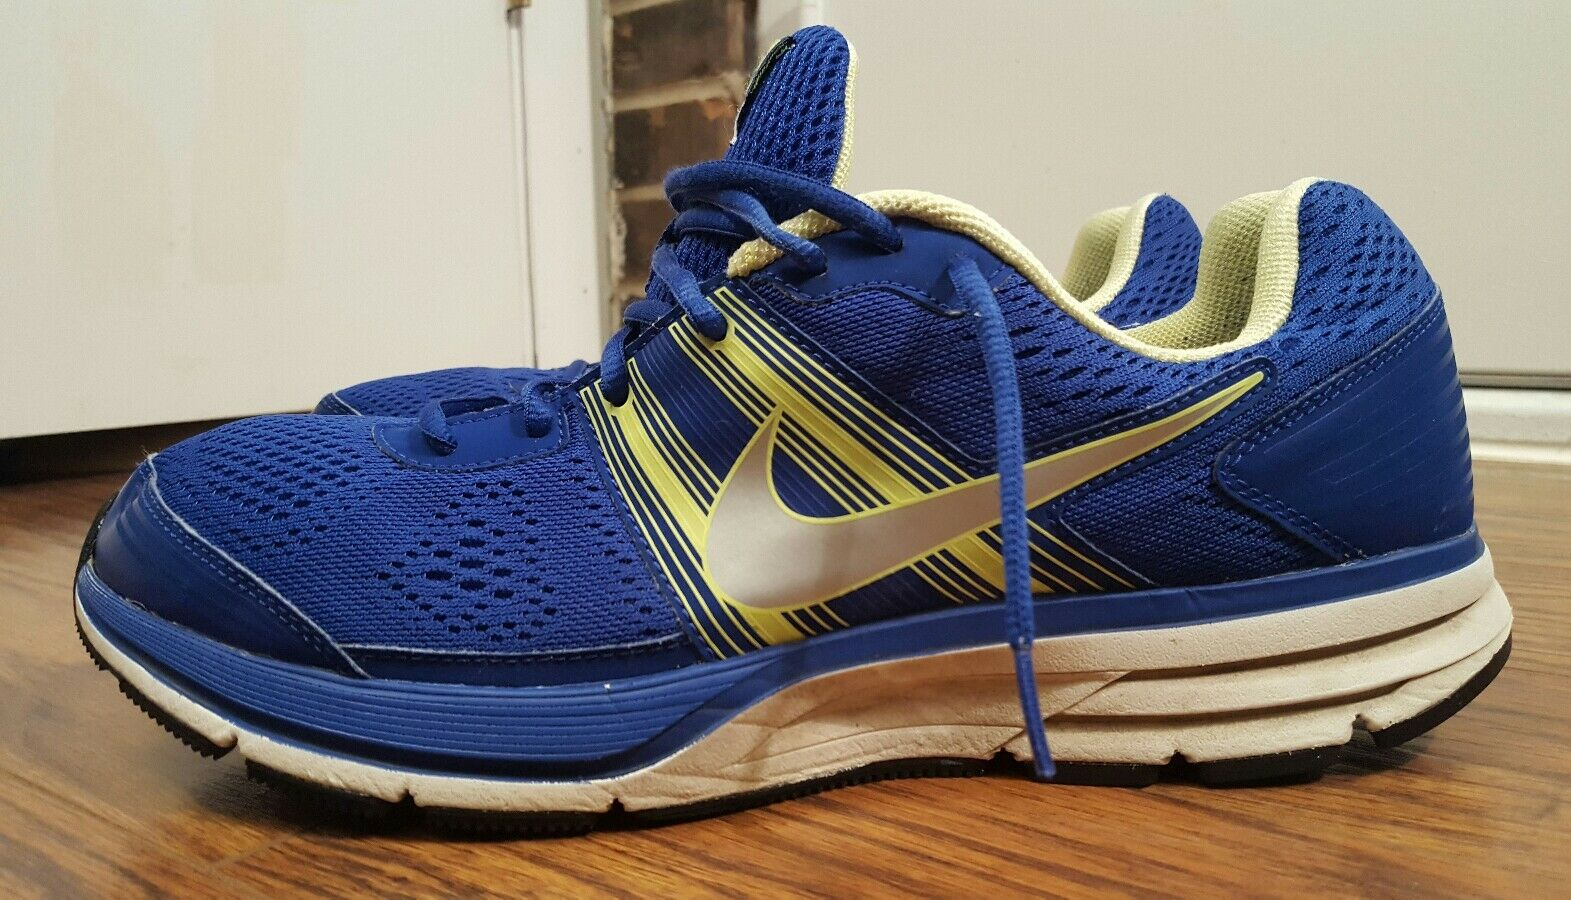 NIKE AIR PEGASUS 29, 524950 407, Men's Running Shoes, Blue, Comfortable New shoes for men and women, limited time discount